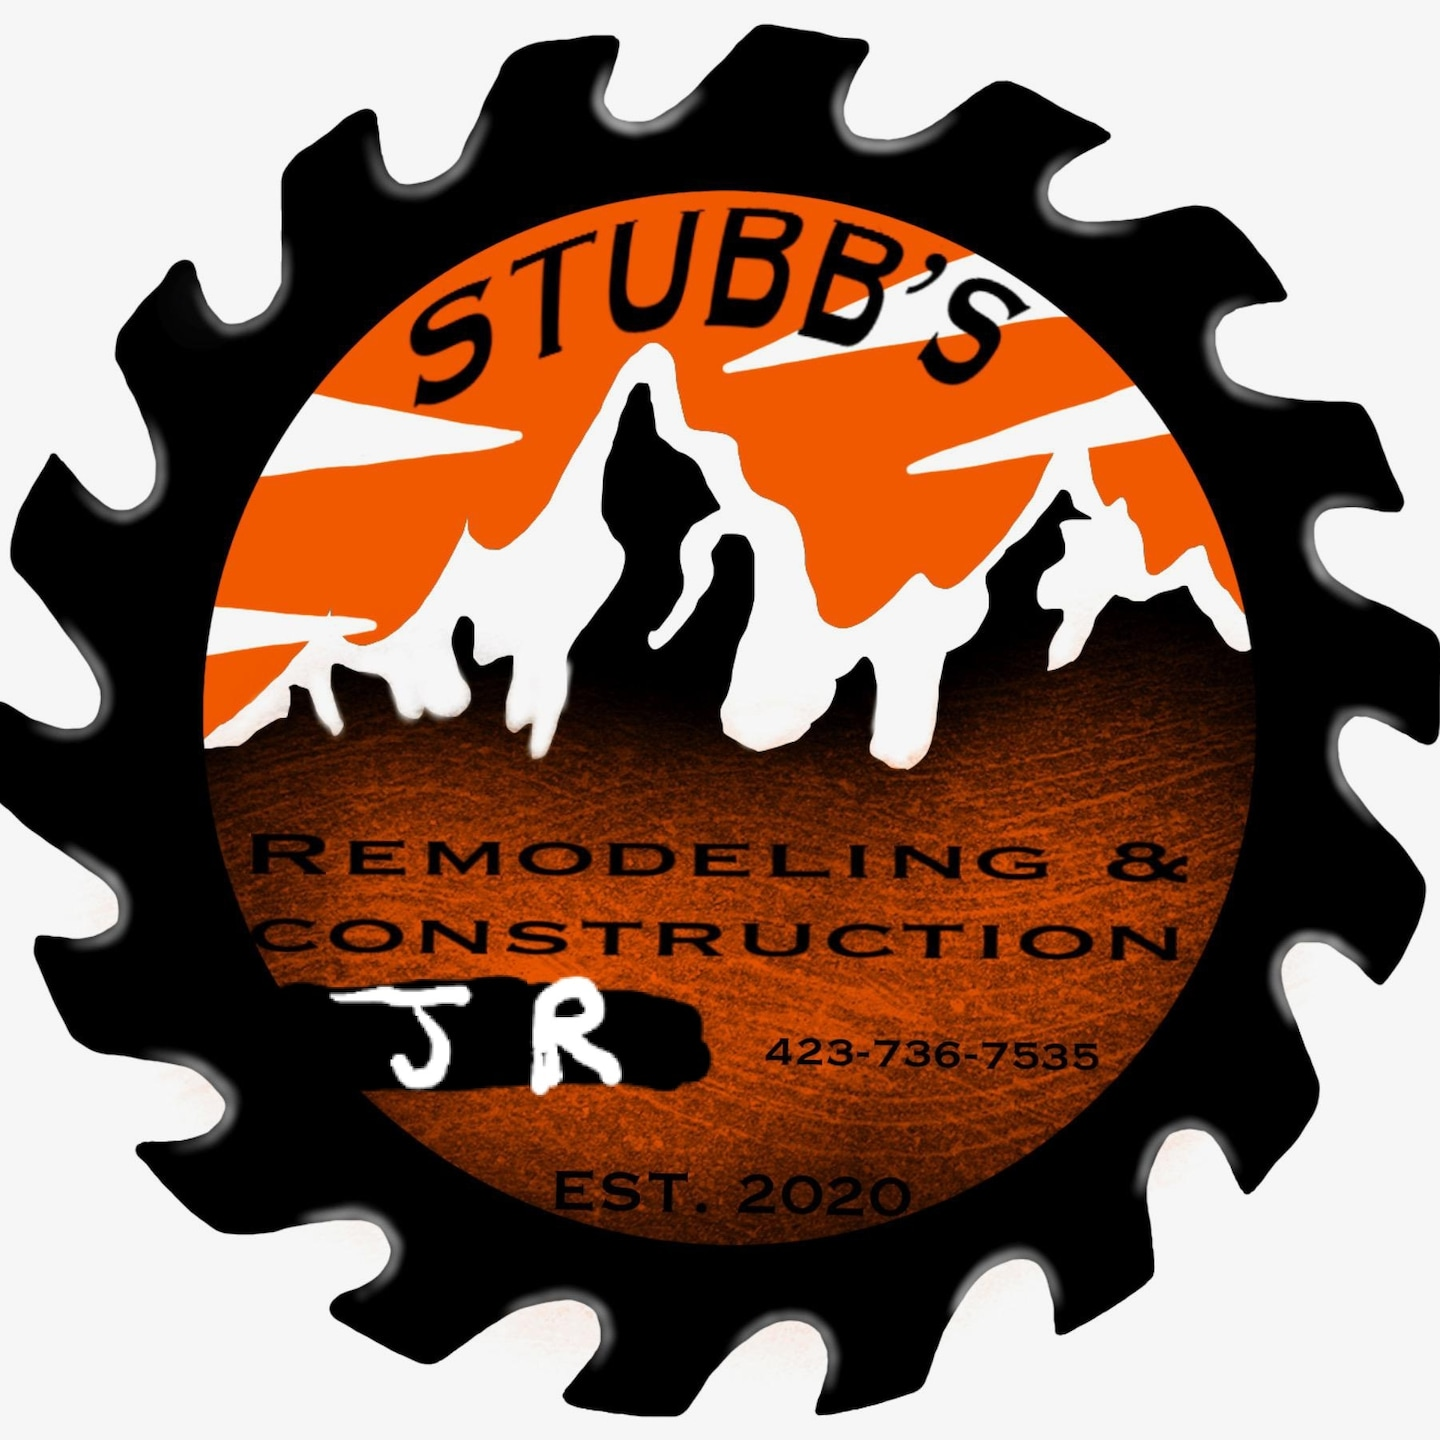 Stubb's Remodeling and Construction